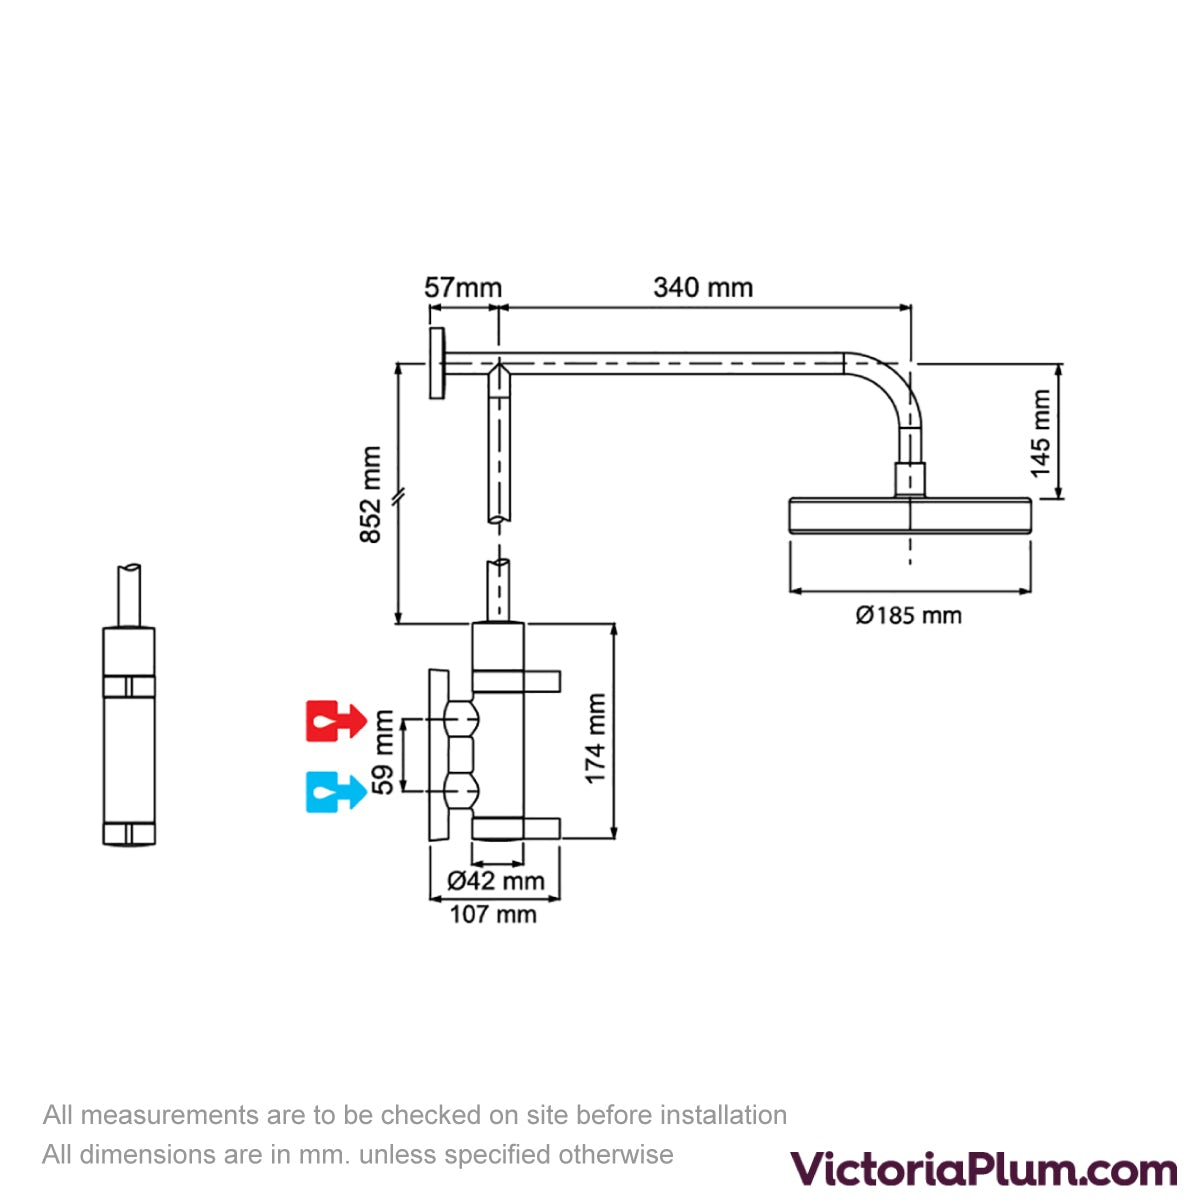 Dimensions for Mira Miniluxe ER thermostatic mixer shower